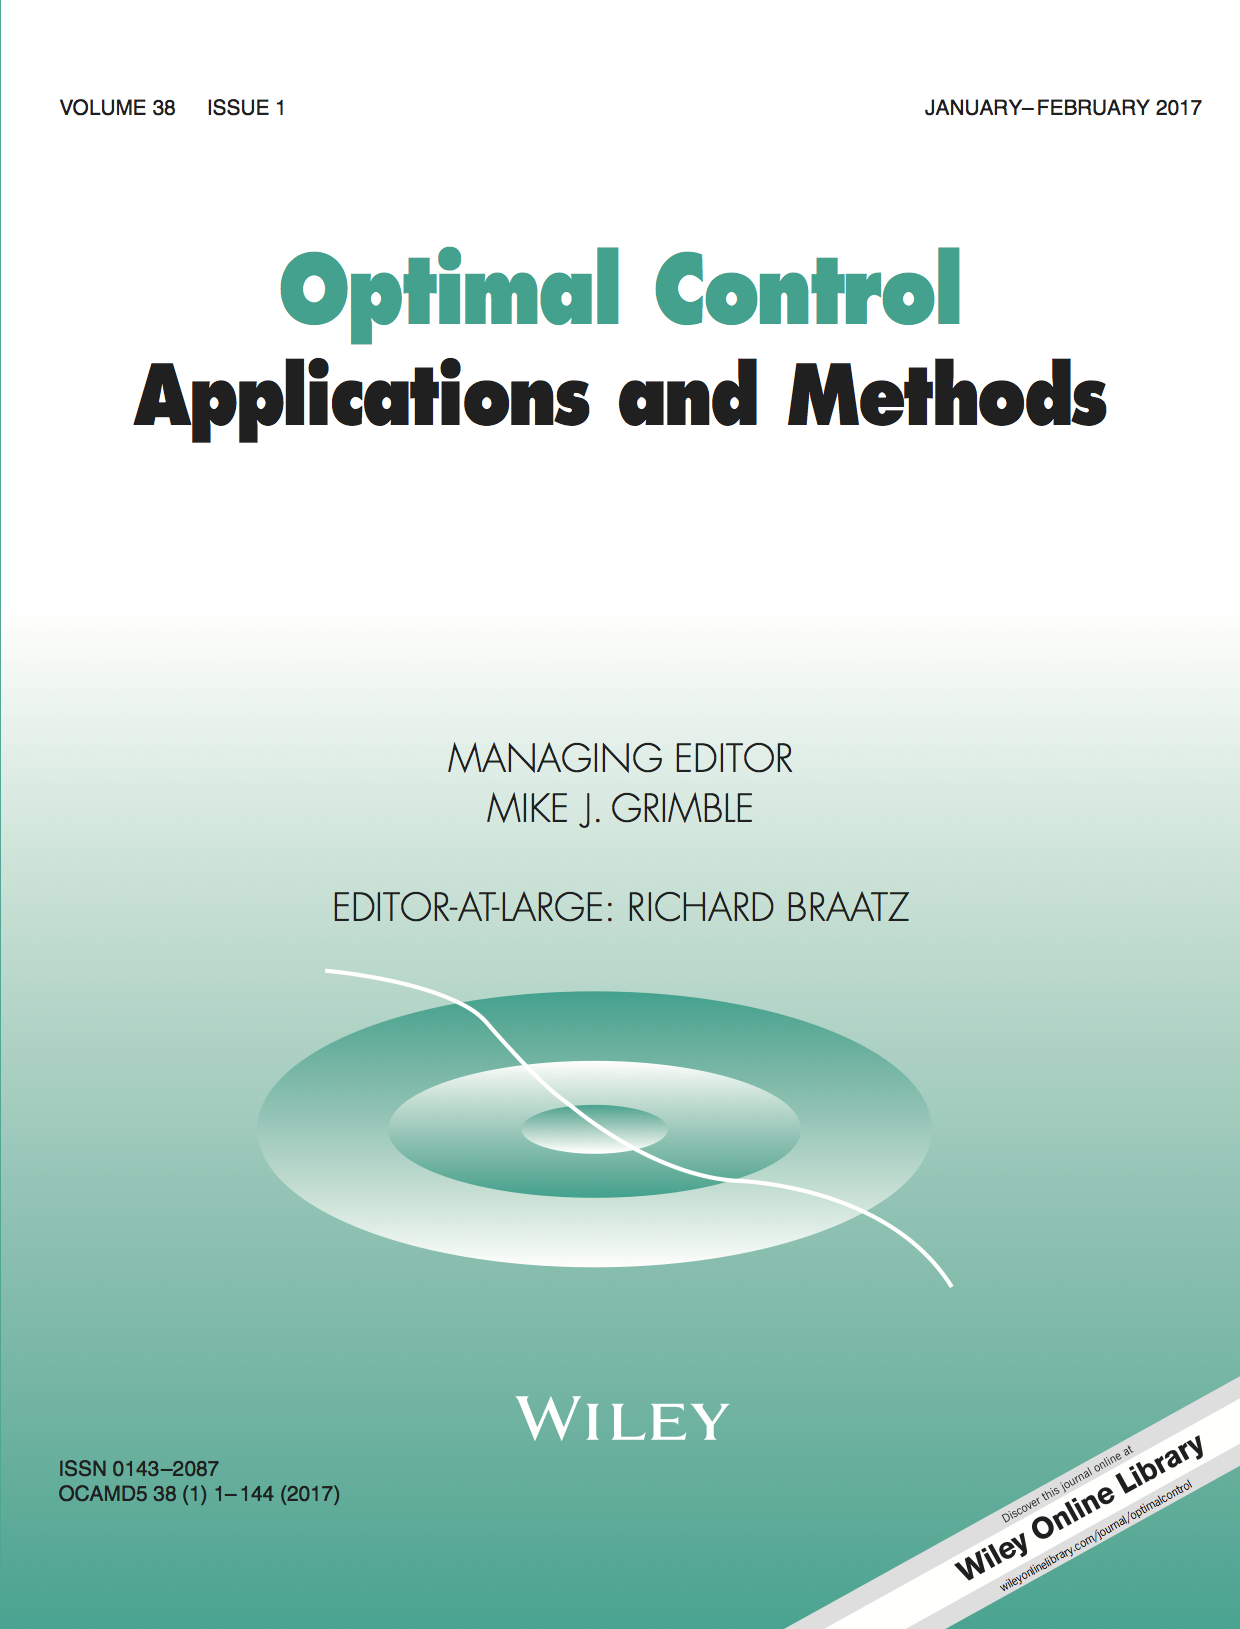 Optimal Control Applications and Methods template (Wiley)